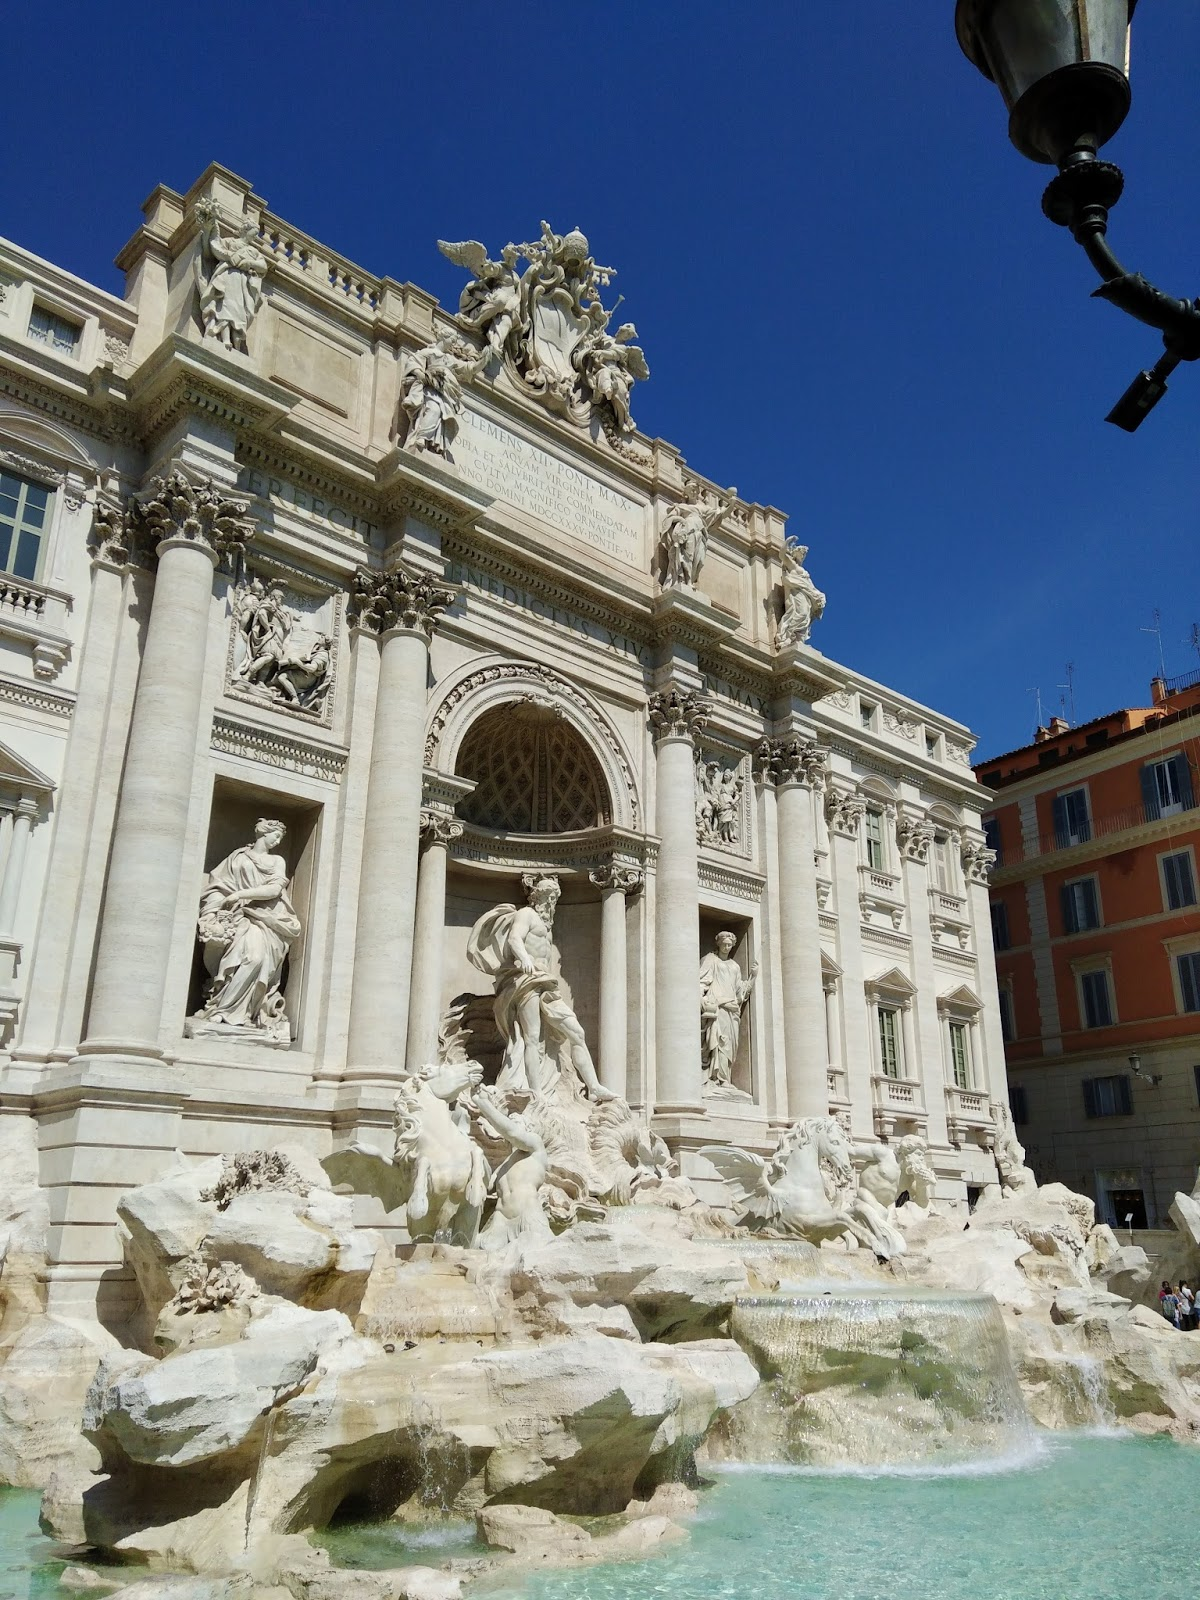 Visiting Trevi Fountain, Travel Apps for Italy